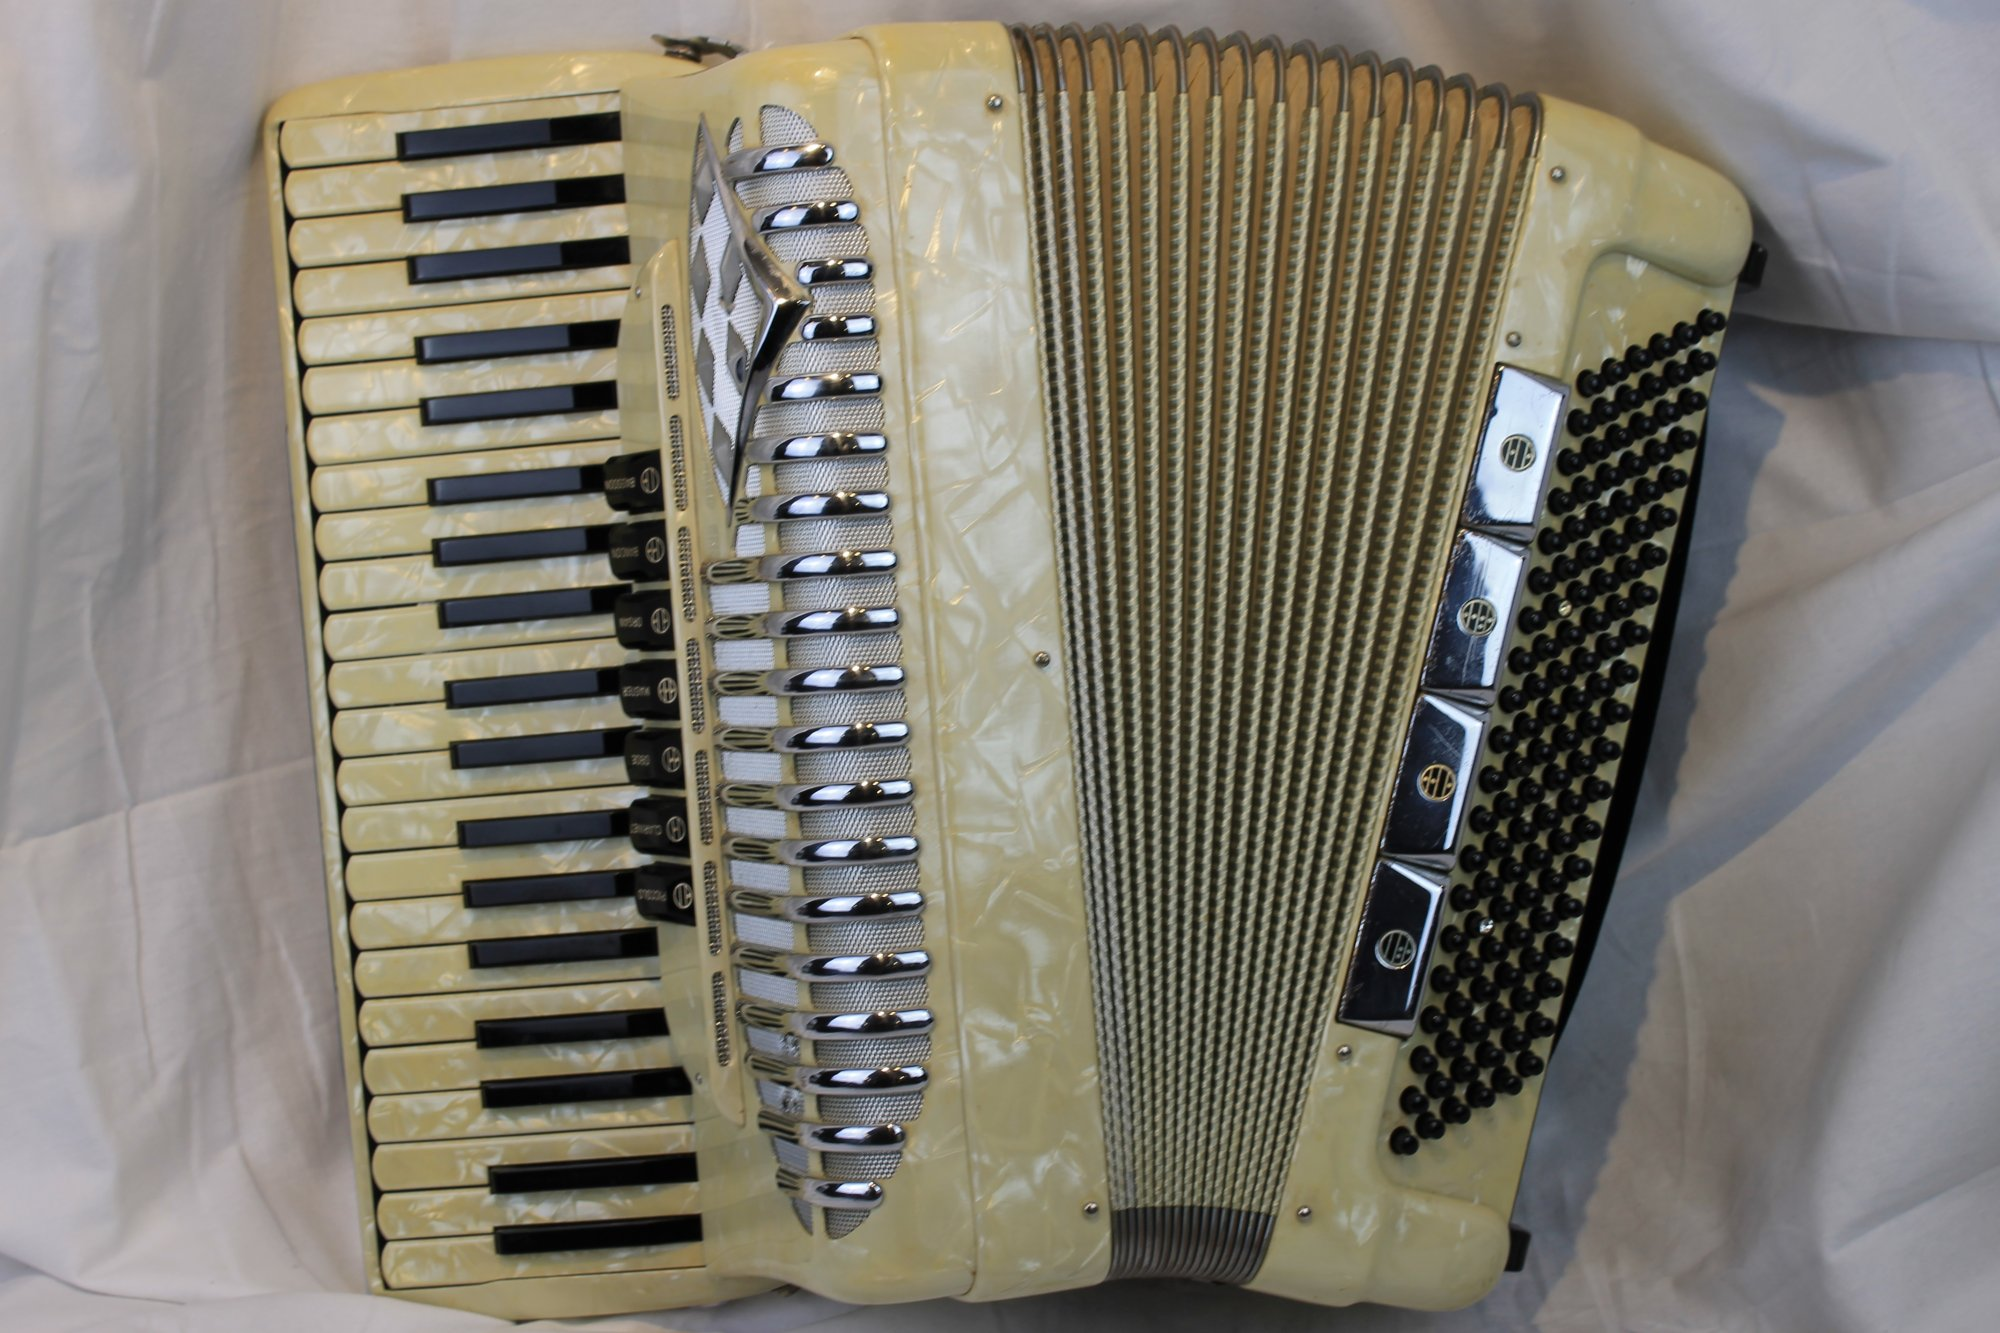 2826 - Ivory Morbidoni Piano Accordion LMH 41 120